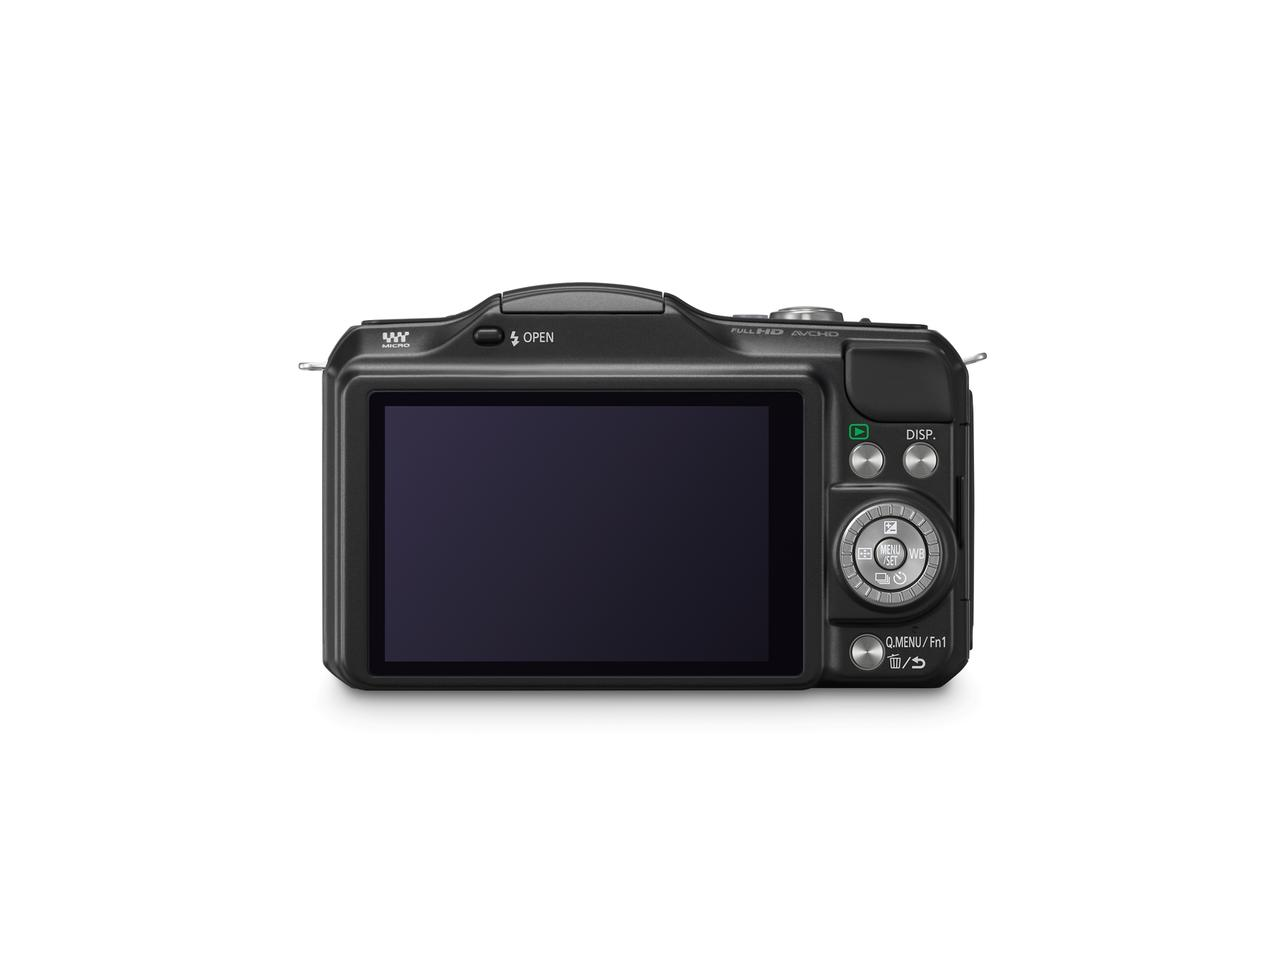 Panasonic's new LUMIX DMC-GF5 gains a higher resolution 3.0-inch 920,000-dot high-precision touch display than last year's GF3 Micro Four Thirds release